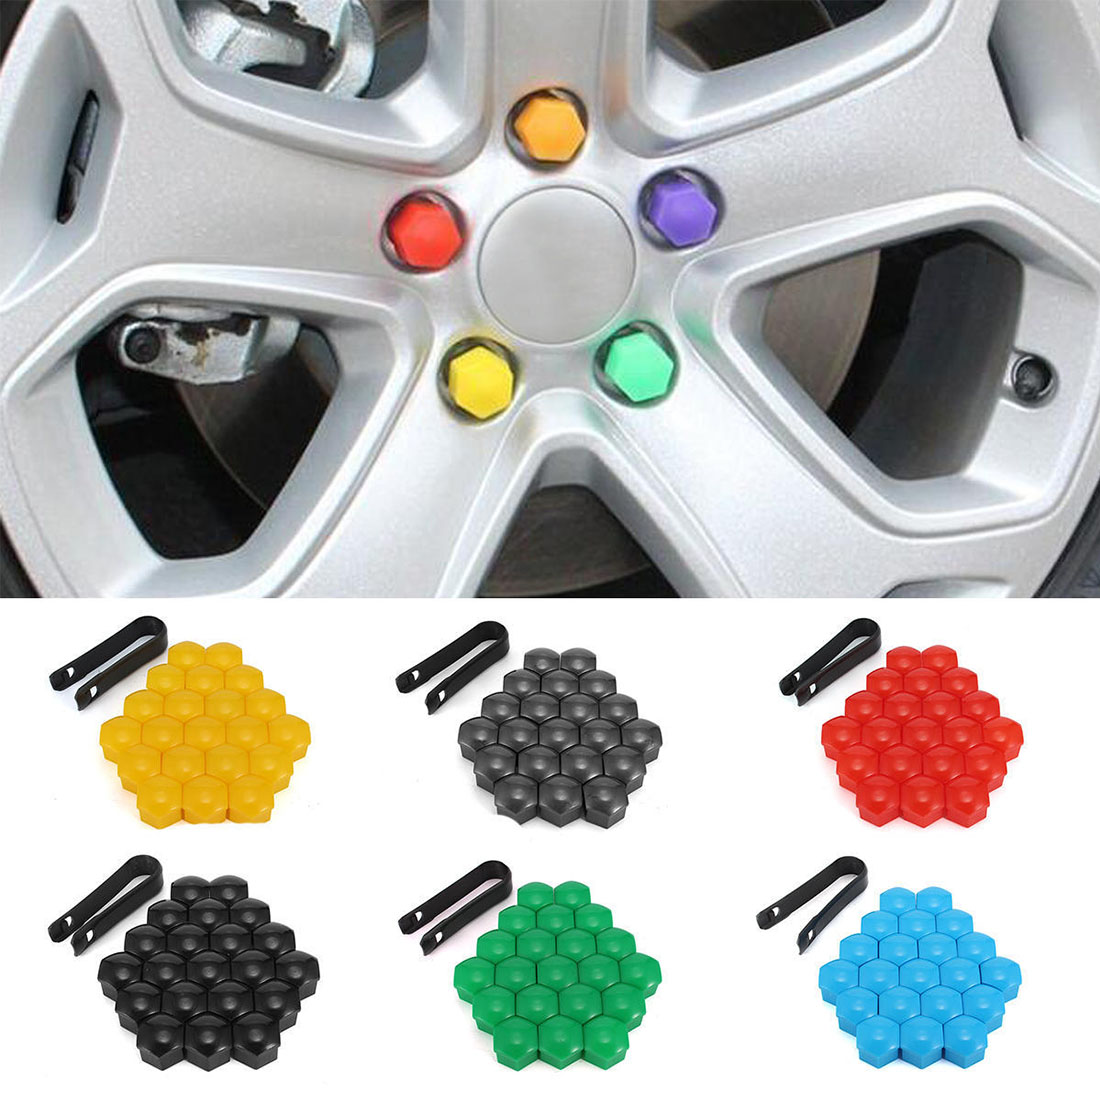 20pcs 17mm Decorative <font><b>Silicone</b></font> <font><b>Car</b></font> Bolt Caps <font><b>Wheel</b></font> <font><b>Nuts</b></font> <font><b>Covers</b></font> Practical Antirust Hub Screw Cap Protector image